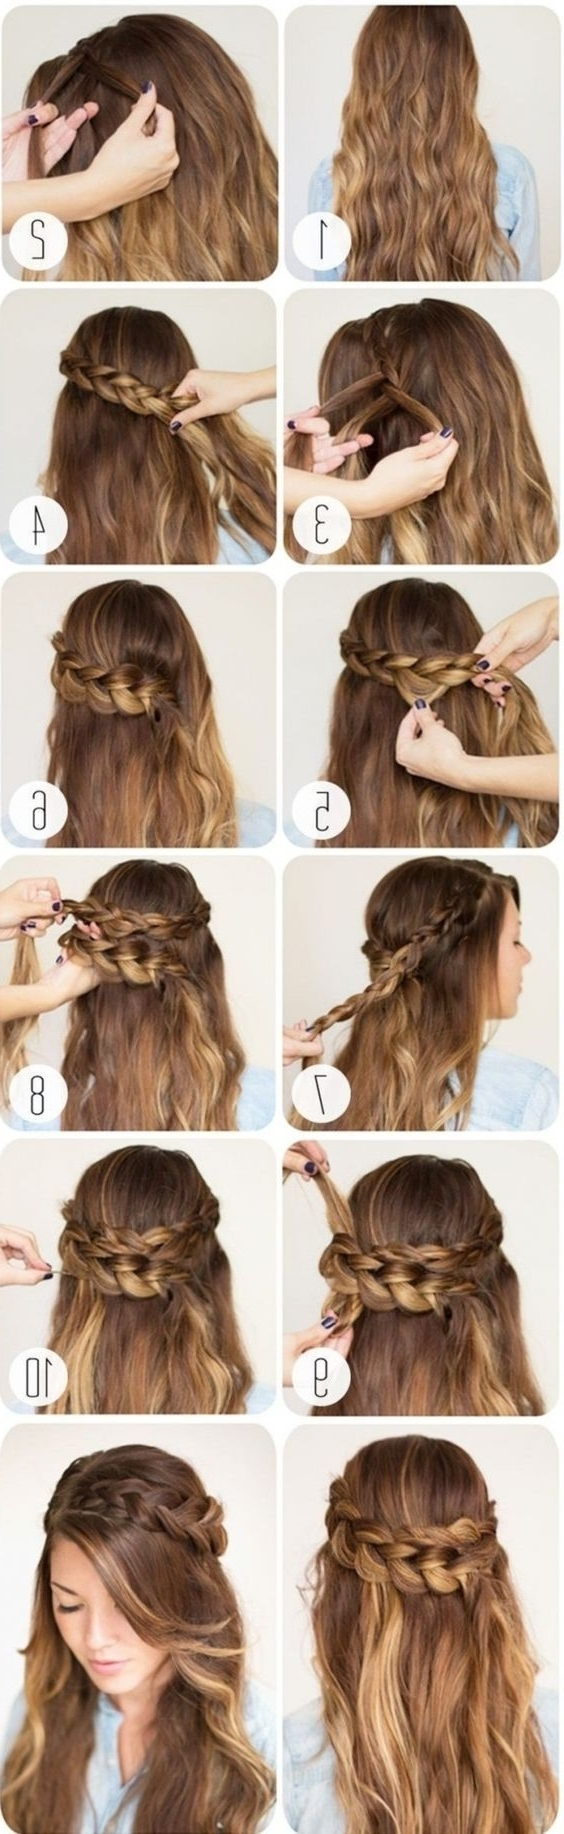 Graduation Hairstyles & Outfit Tips | Hair Styles, Romantic 10+ Awesome Hairstyles For Graduation For Medium Length Hair